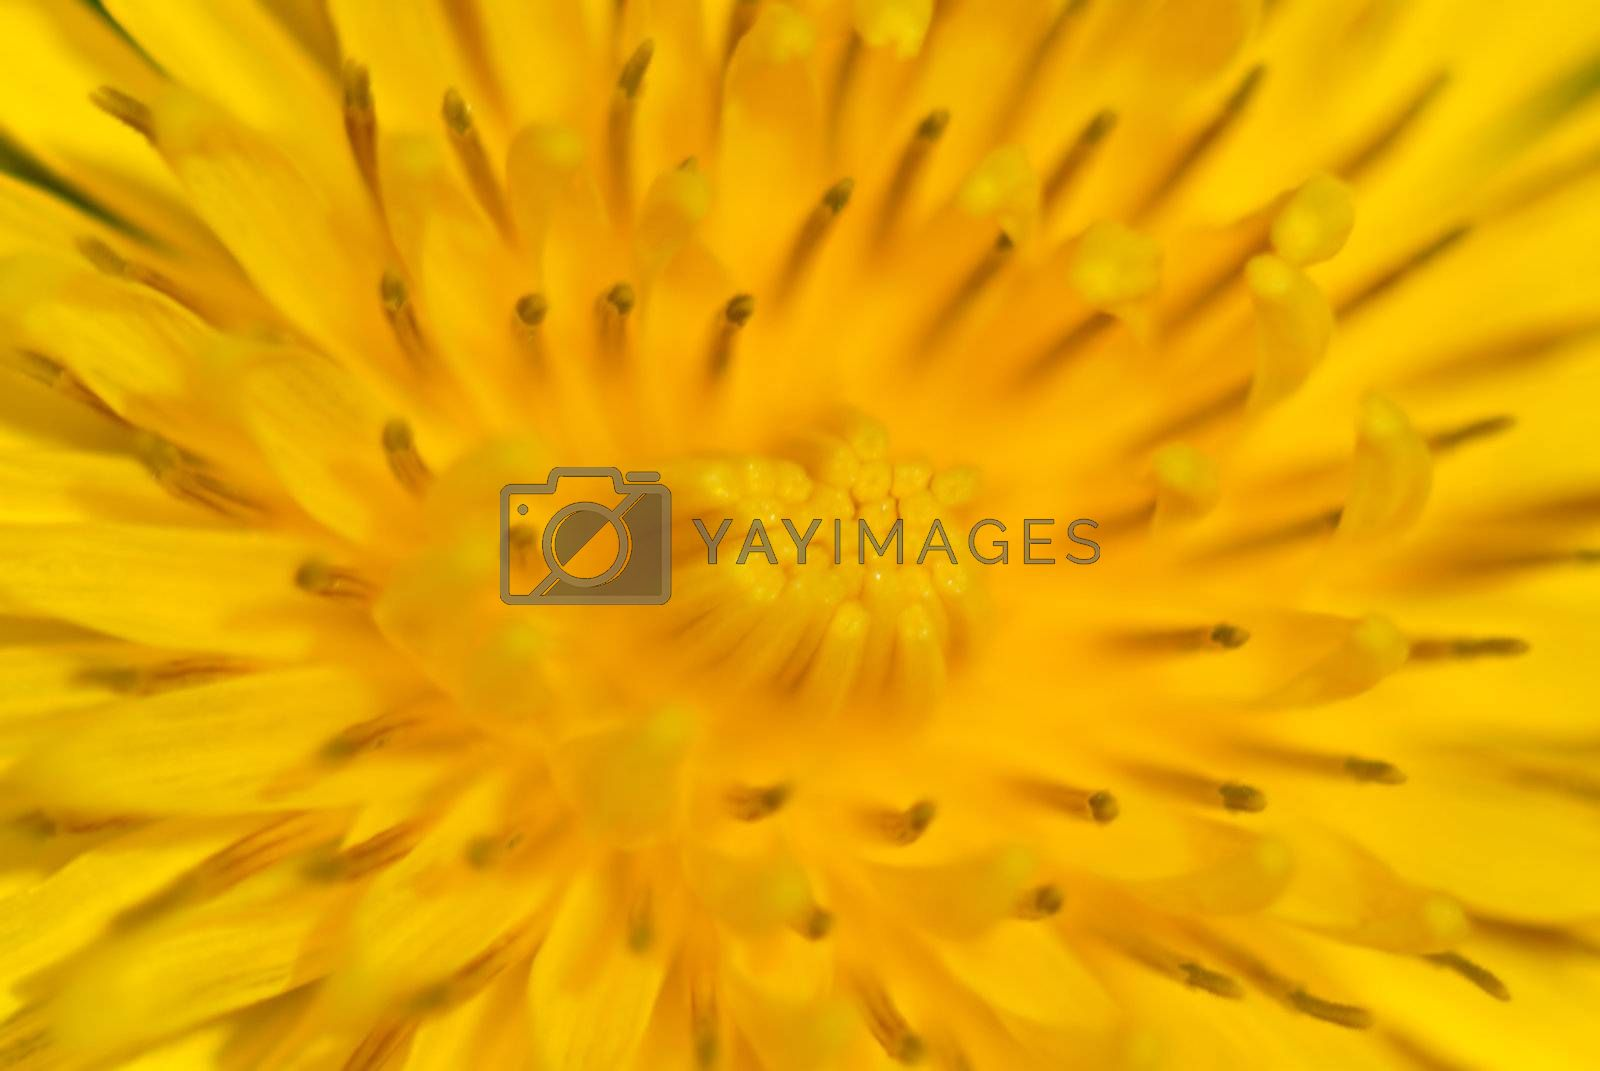 An extreme macro of the center of a dandelion. This image is intended to be a soft focus abstract so as to be a beautiful background without being too distracting and busy.